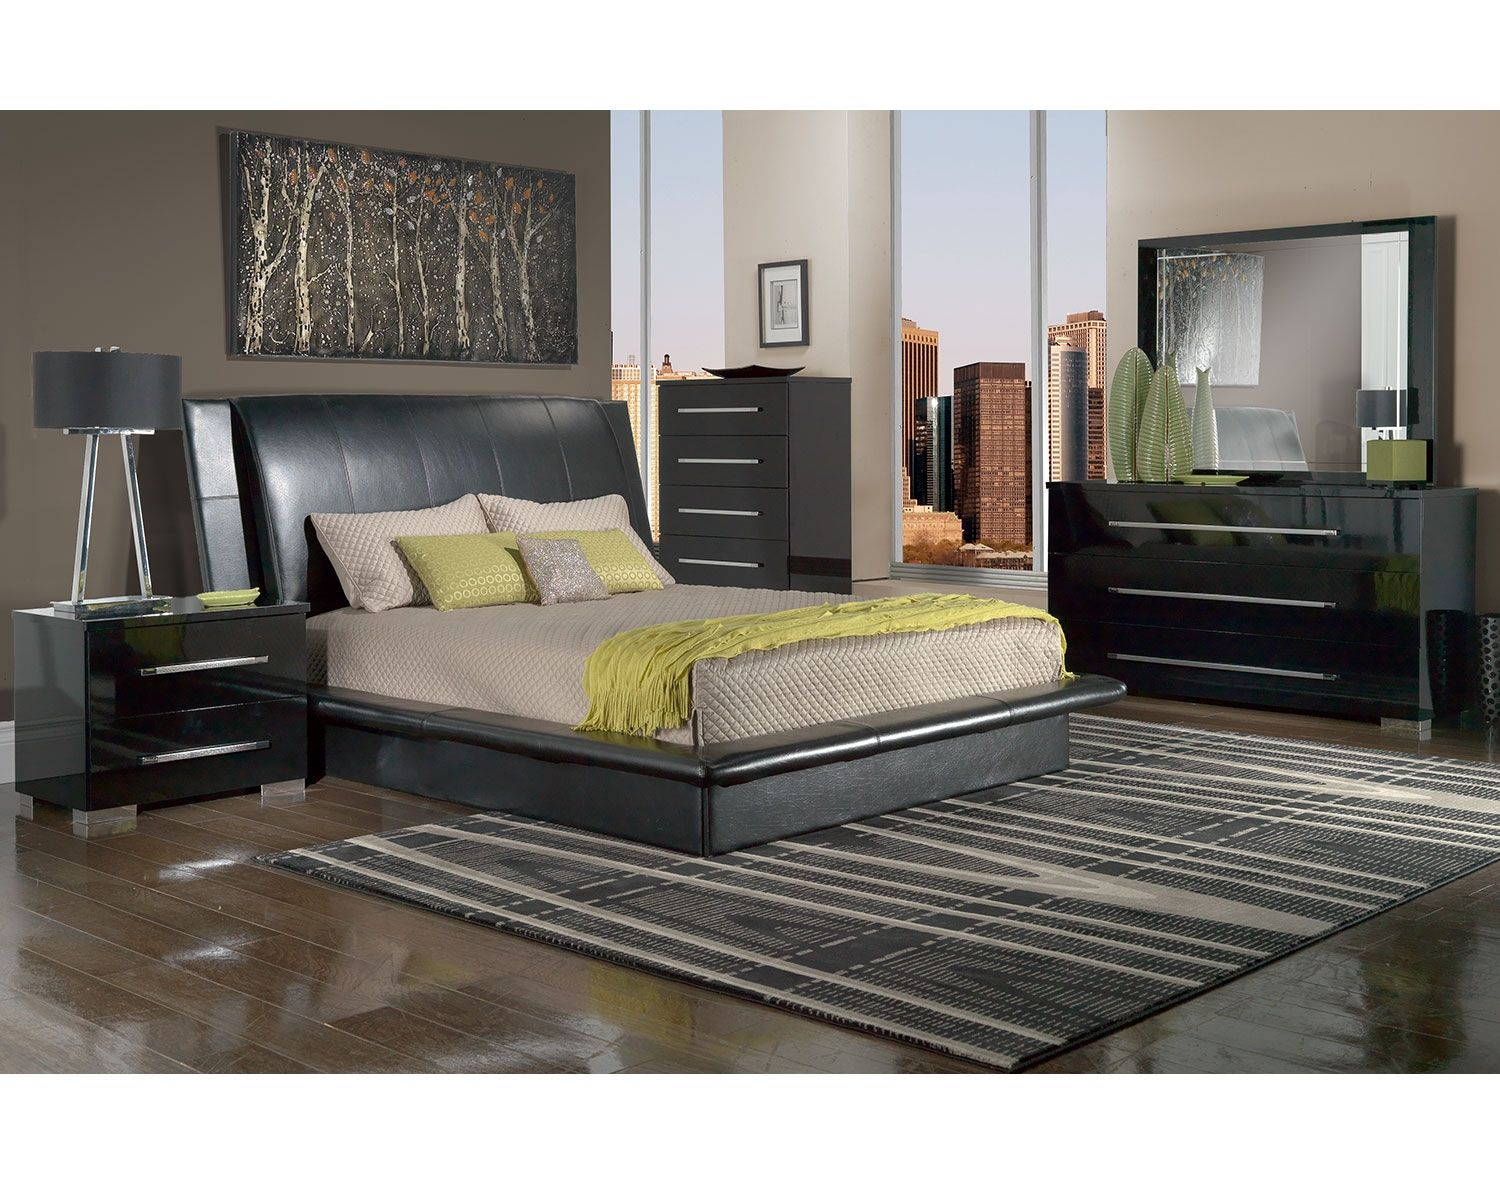 dimora bedroom set%0A                                                                                                            Pinterest    Drawing rooms and Room